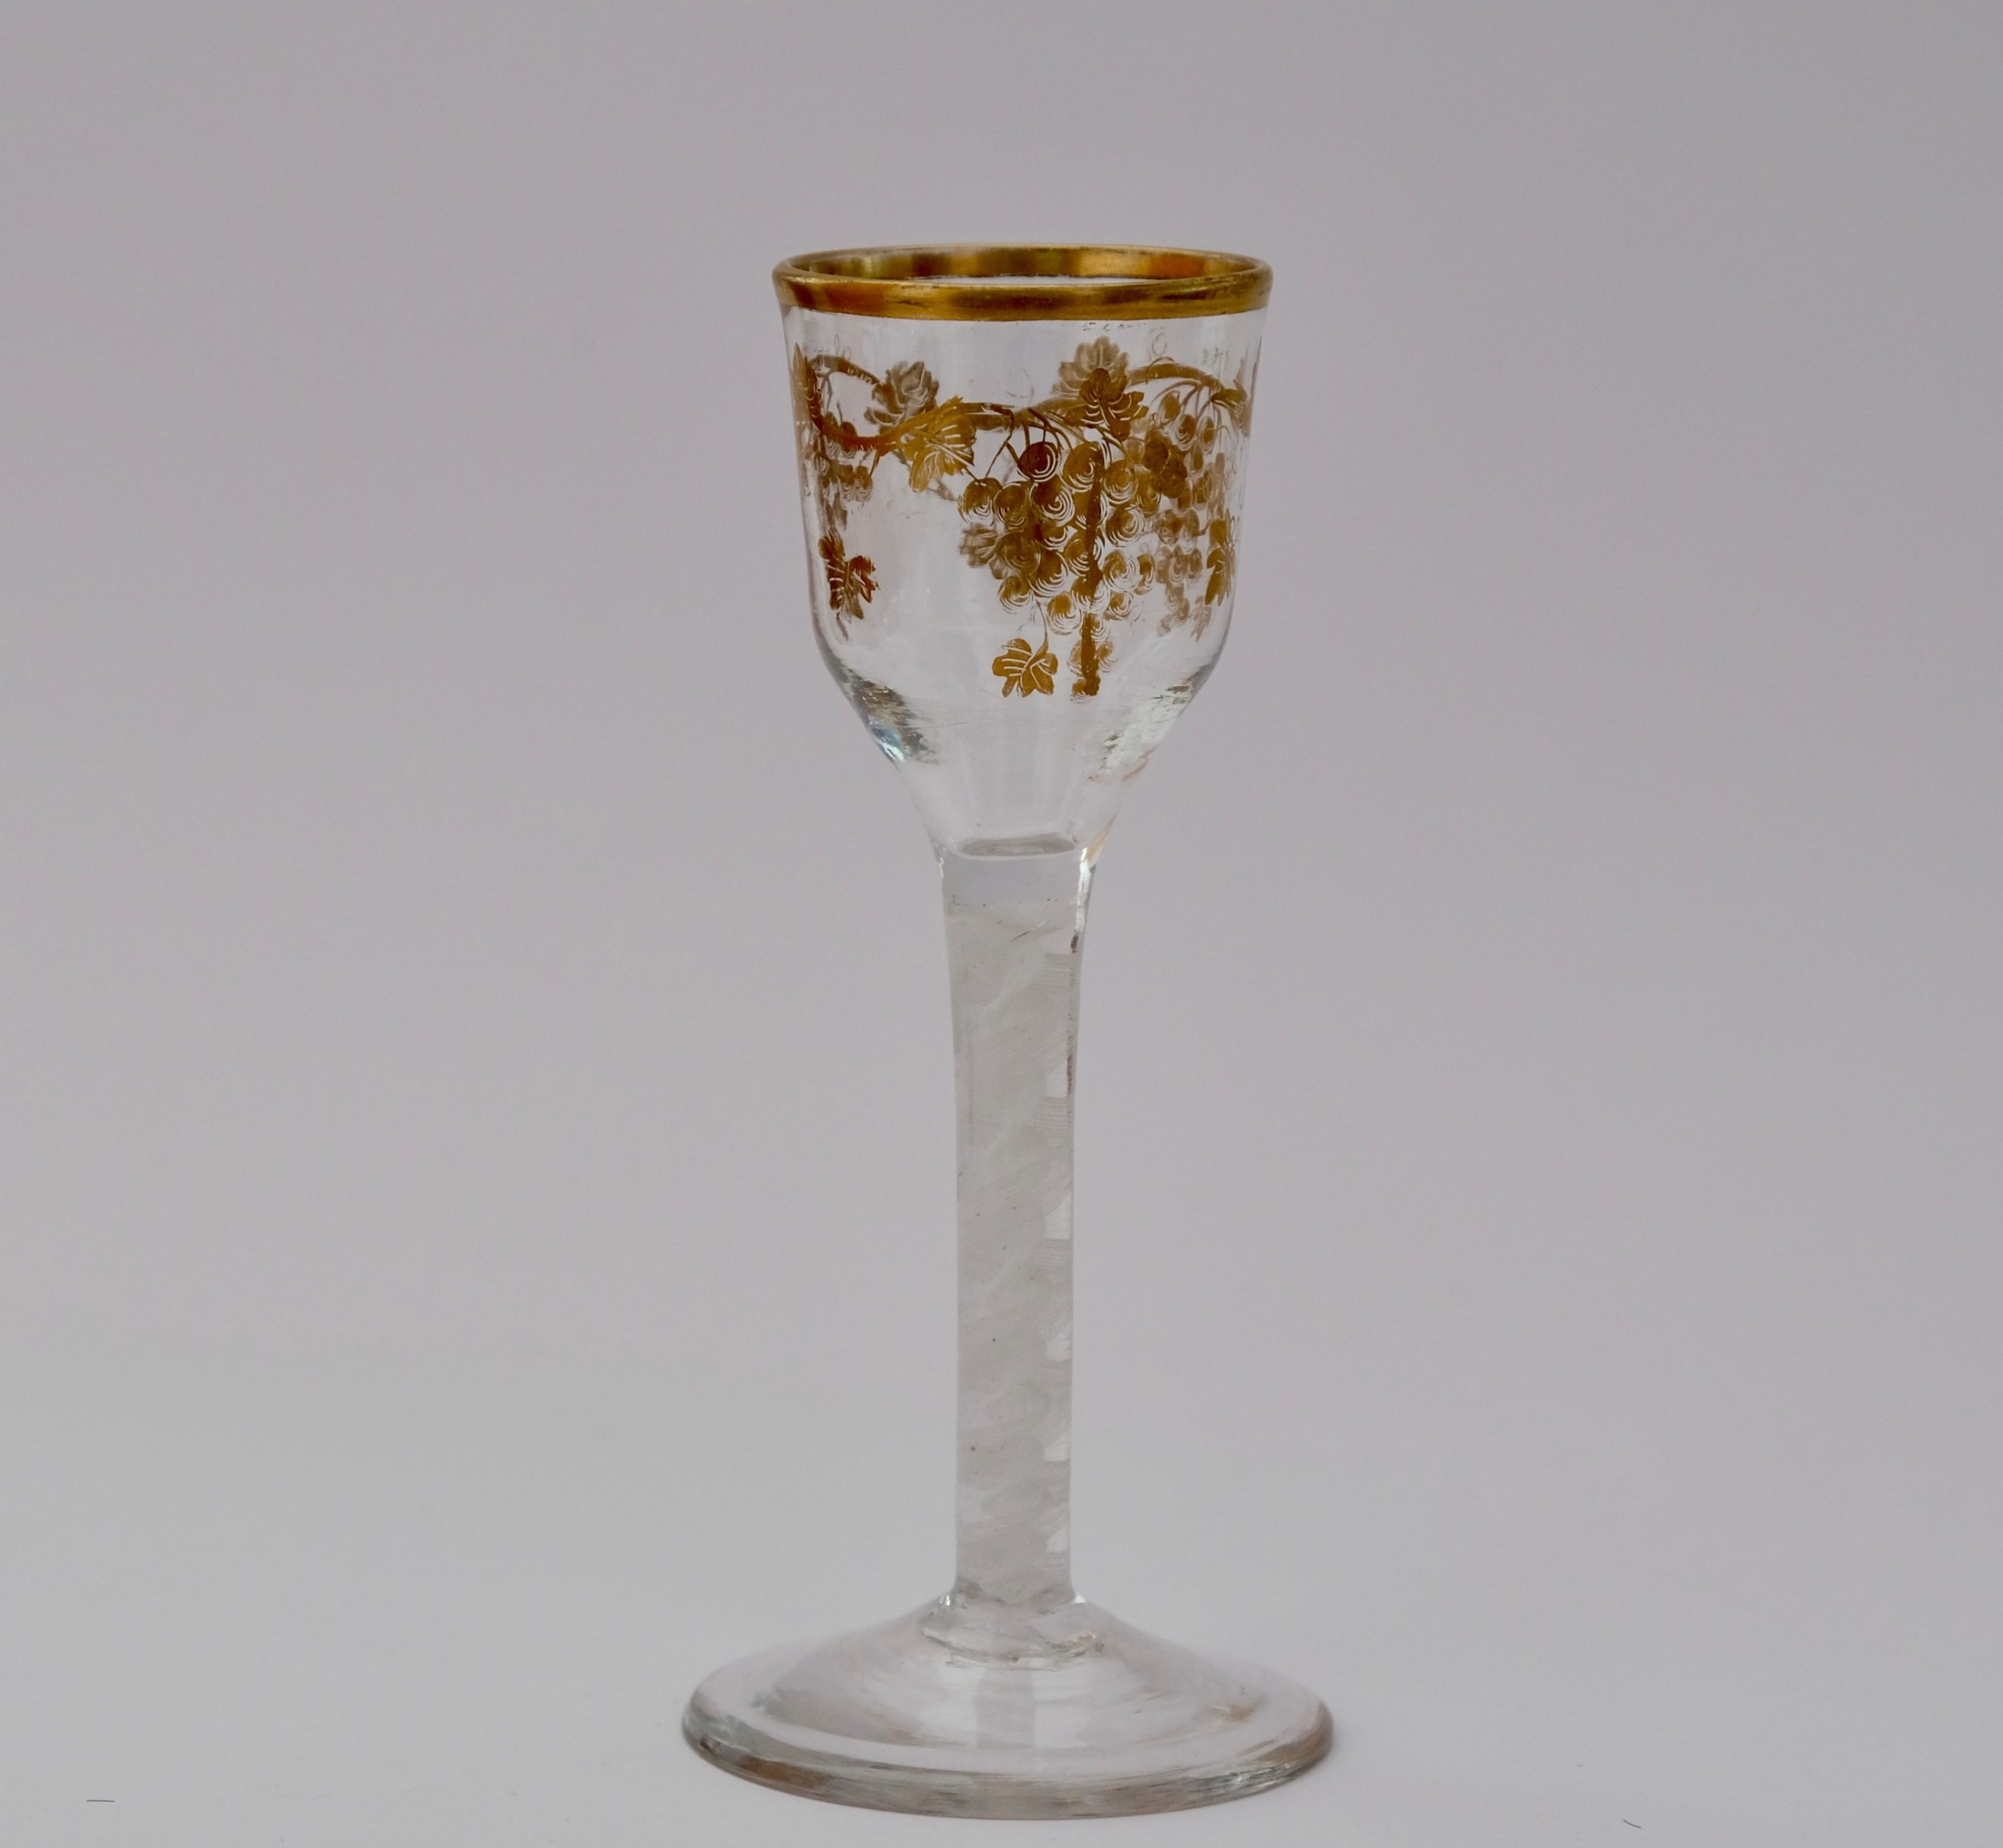 wine glass gilded by james giles c1765